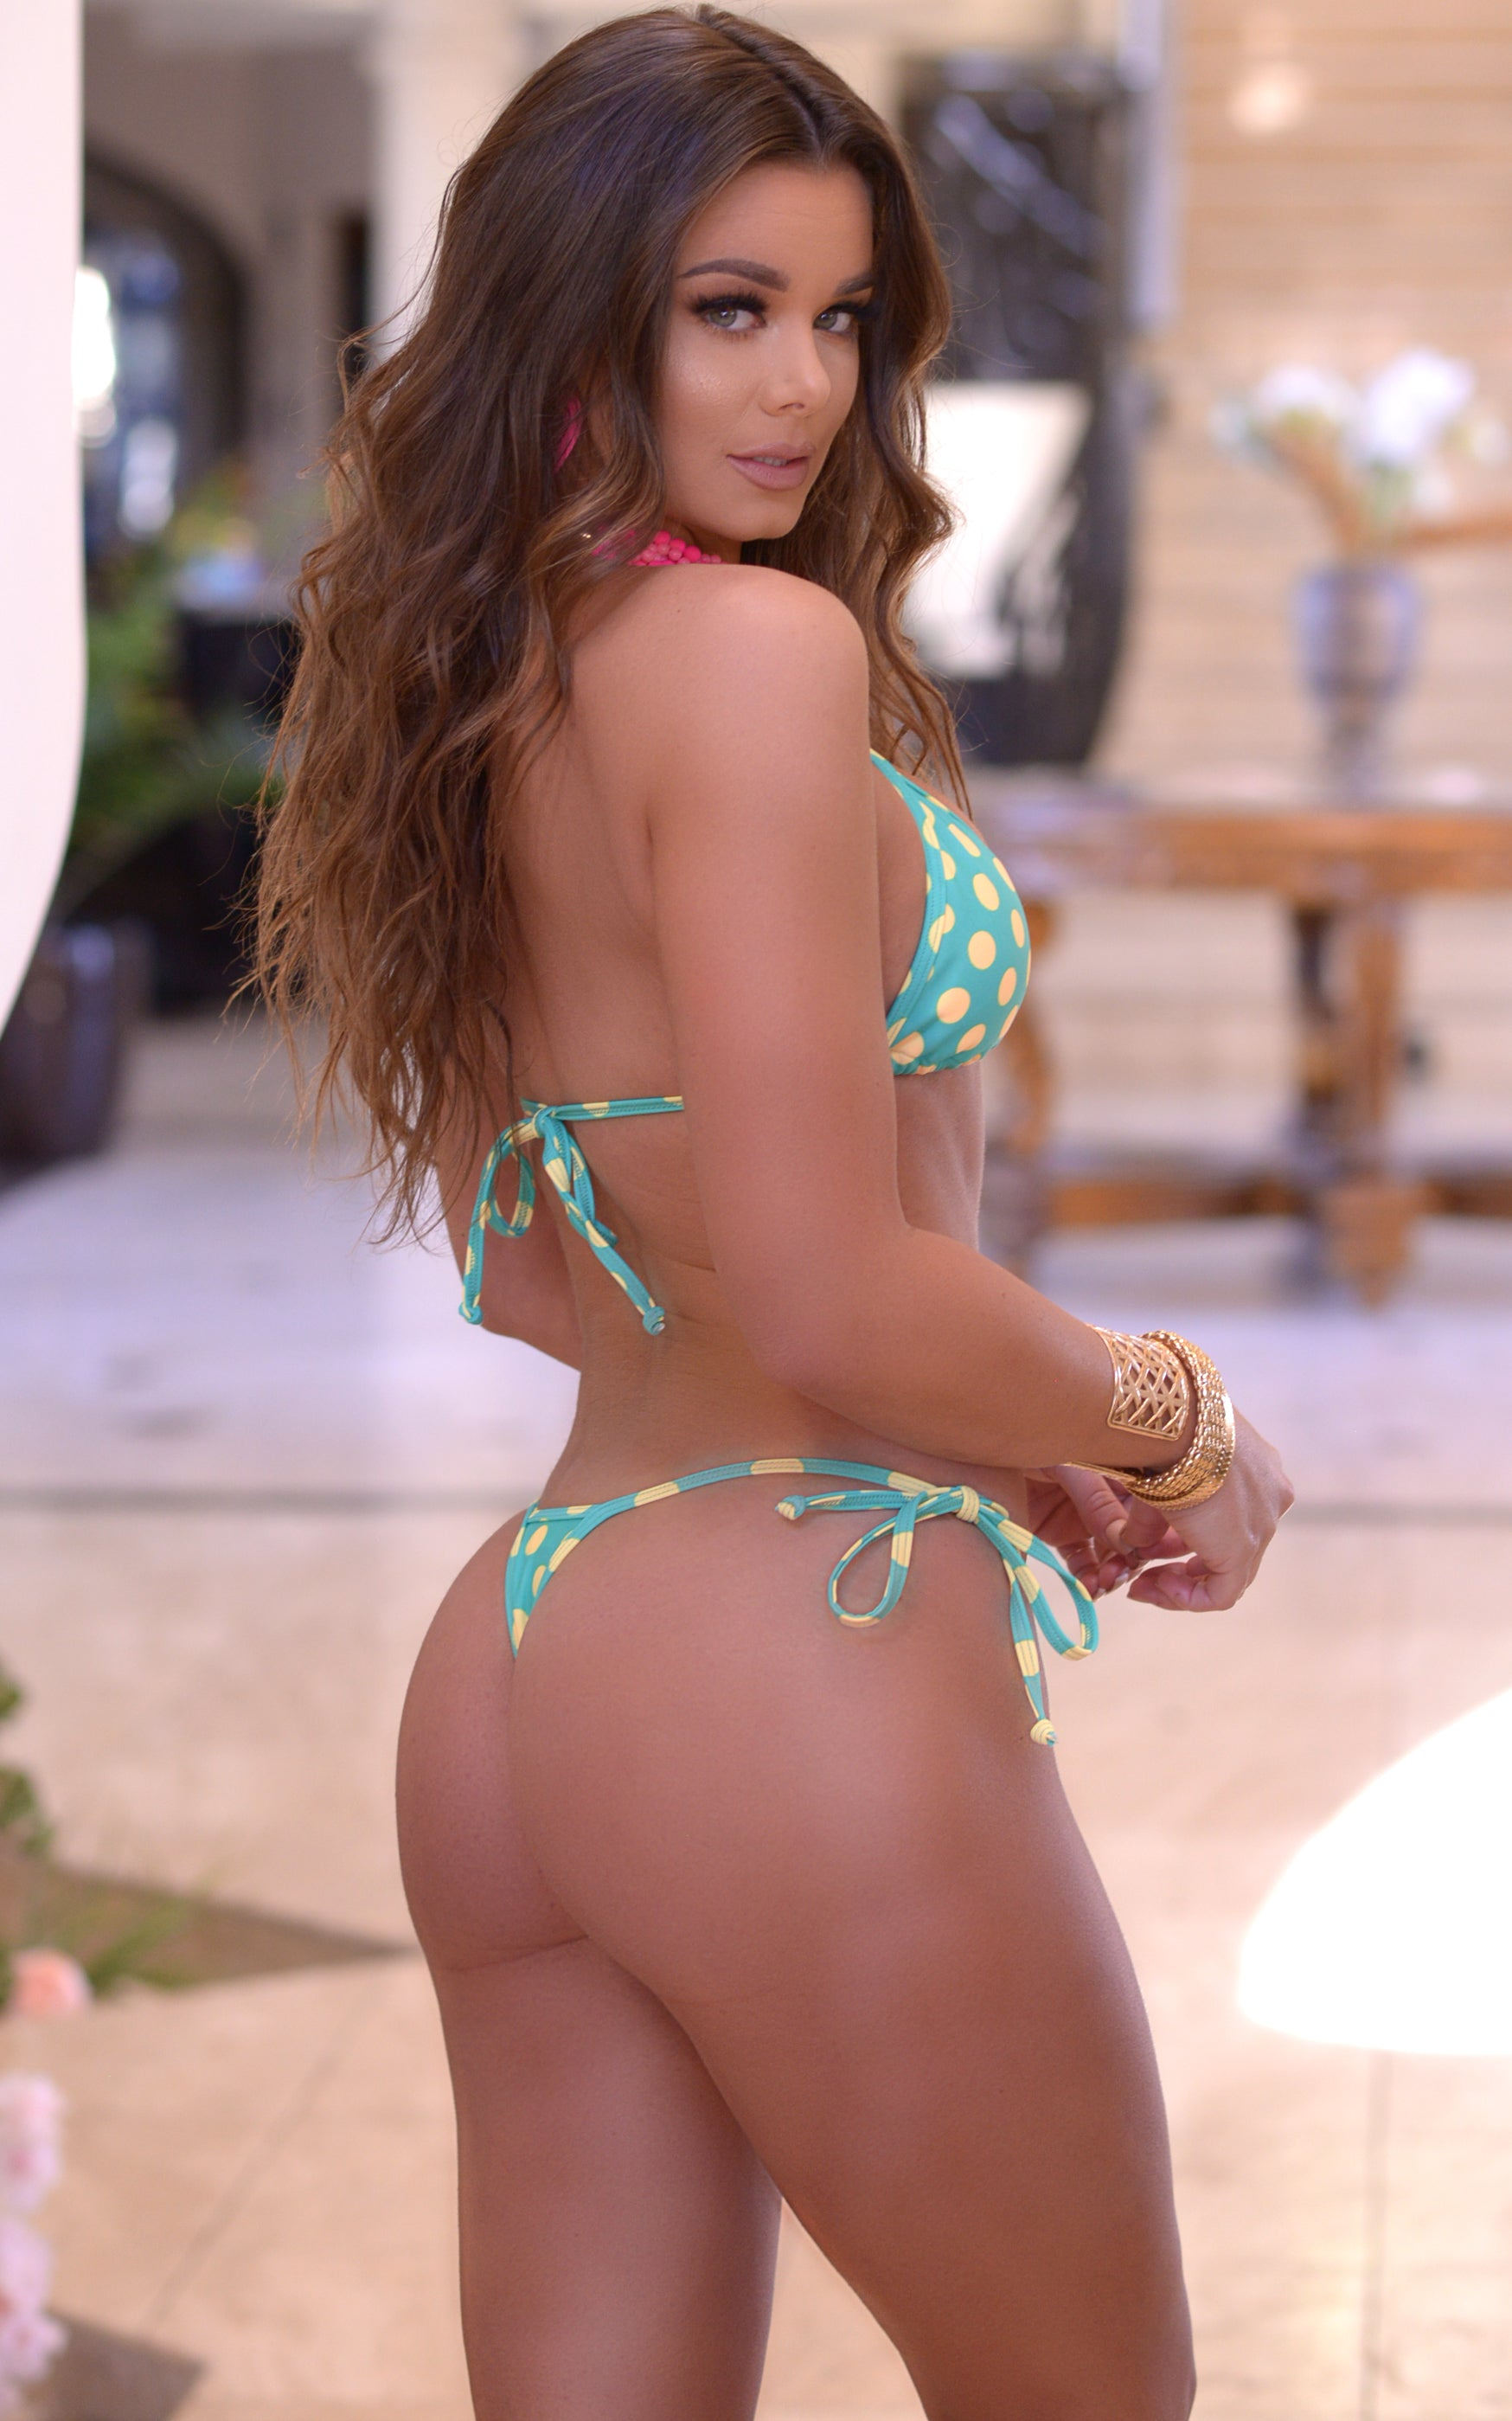 Rio: T-Back Thong Swimsuit in Mint/Yellow Polka Dots - Chynna Dolls Swimwear